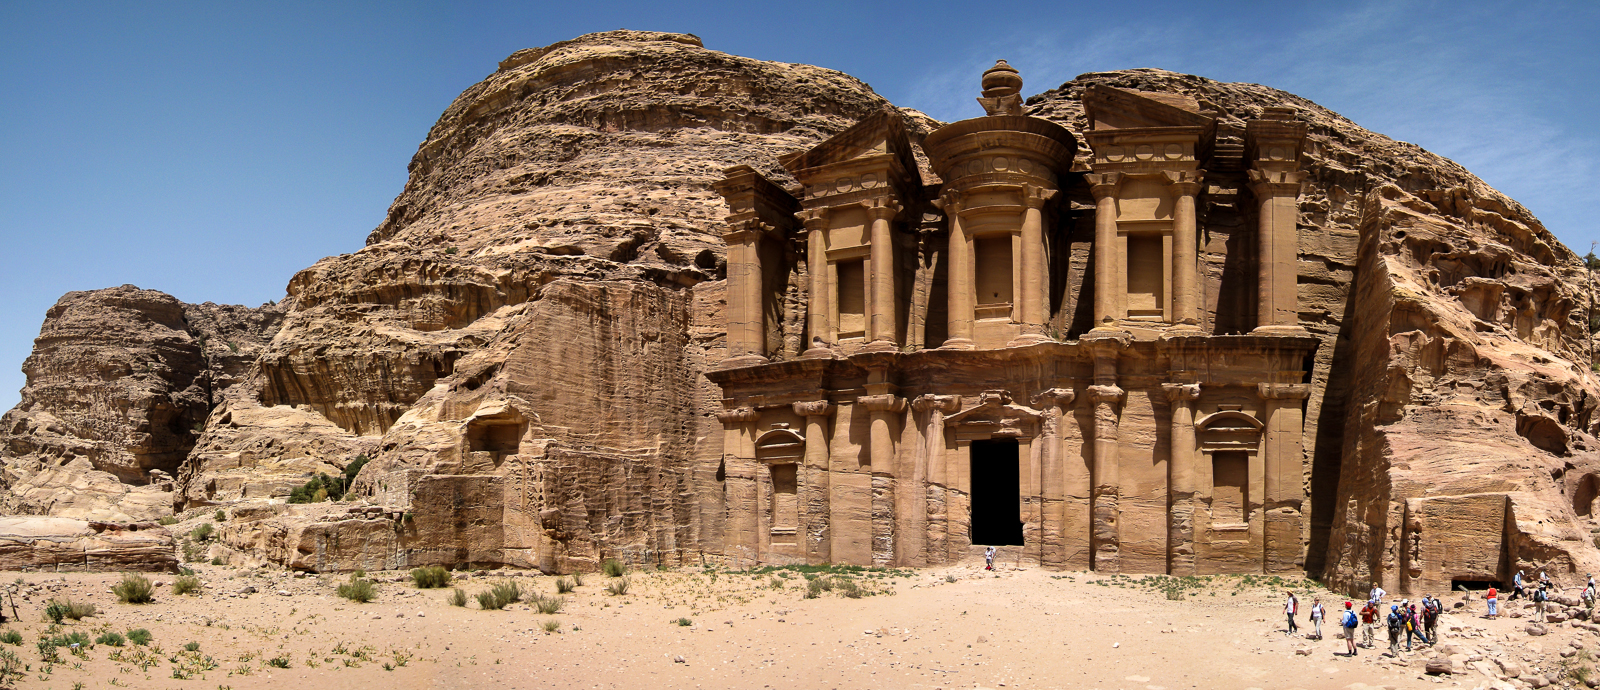 The Monastry at the far end of Petra